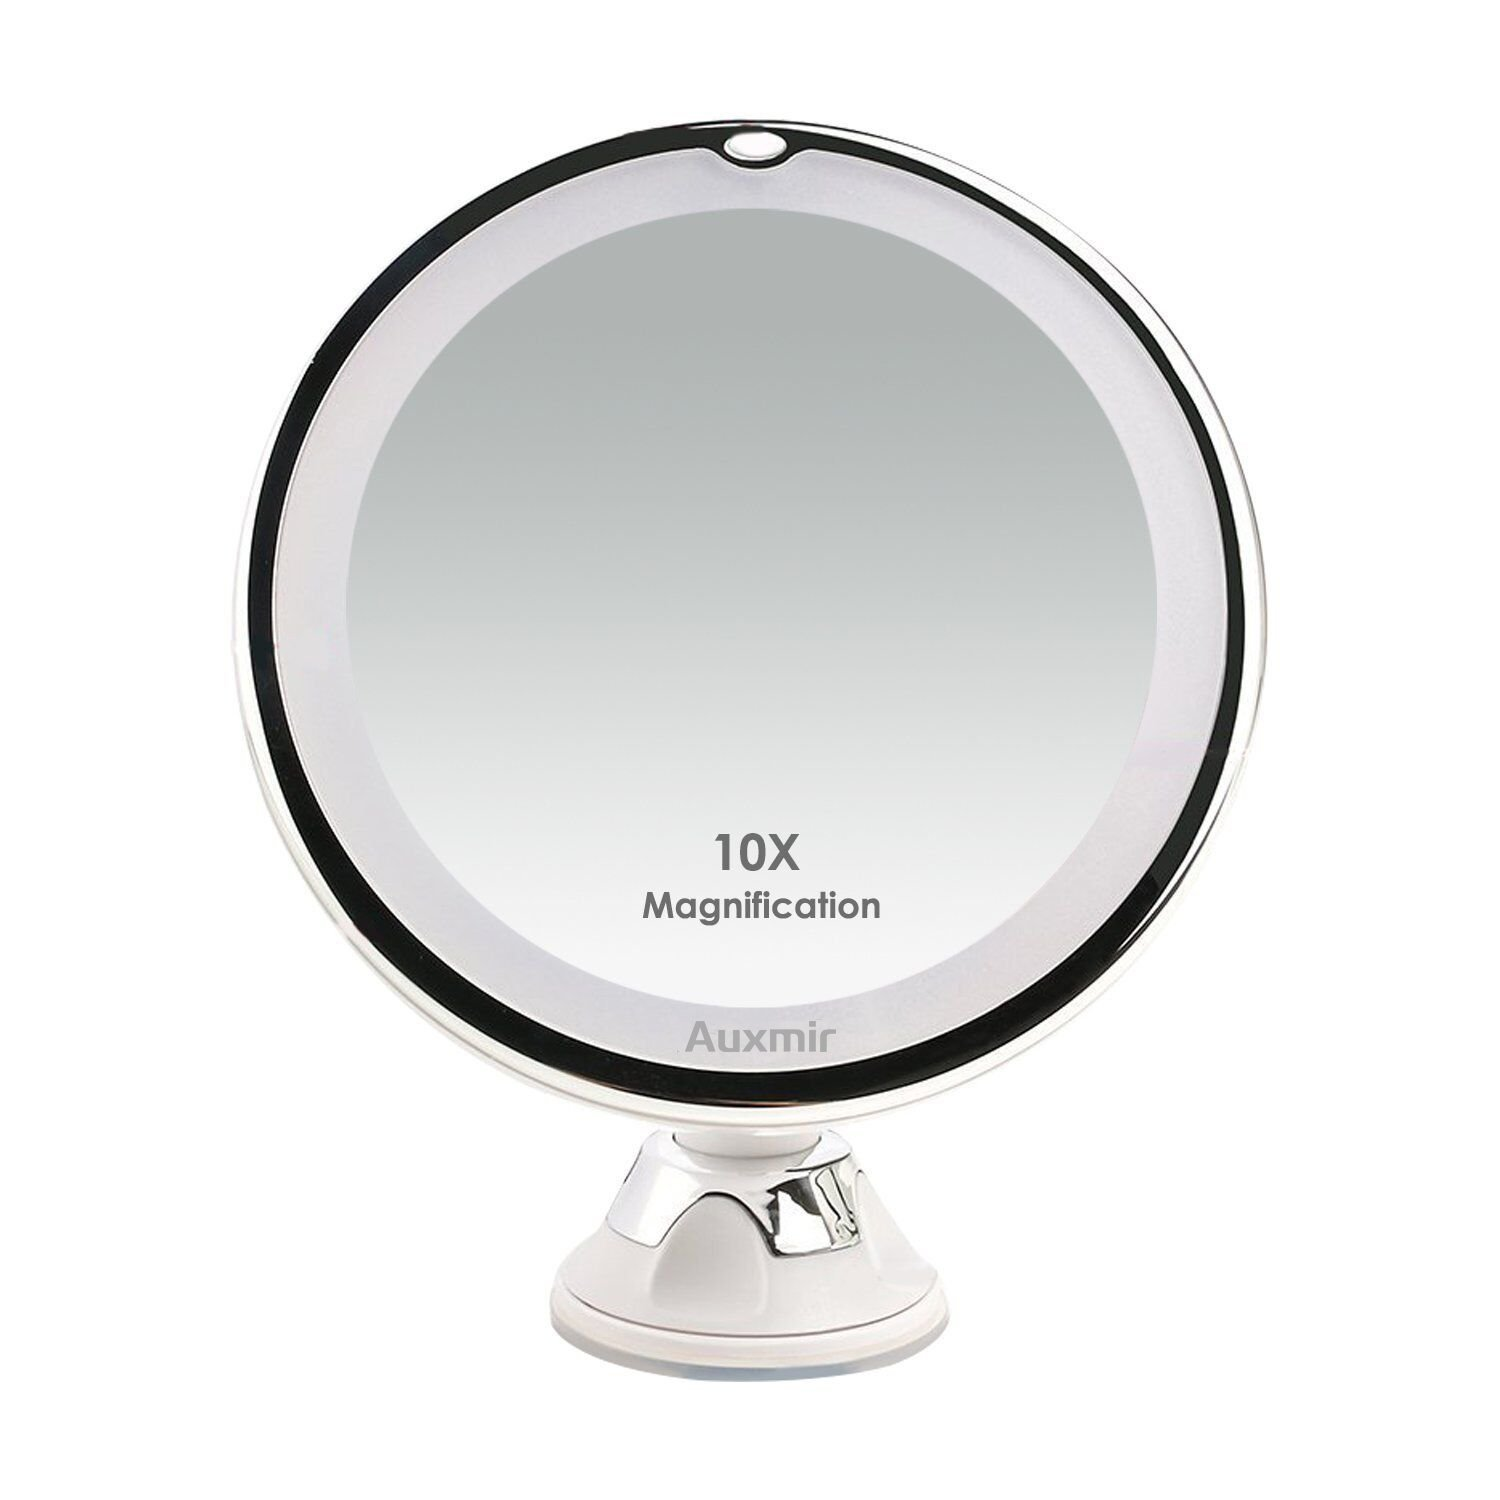 Auxmir 10X Magnifying LED Lighted Makeup Mirror, Vanity Mirror 14 Natural White LED, Suction Base & 360° Rotation, Ideal Bathroom & Travel, Batteries Included, Round, 5.12 5.12